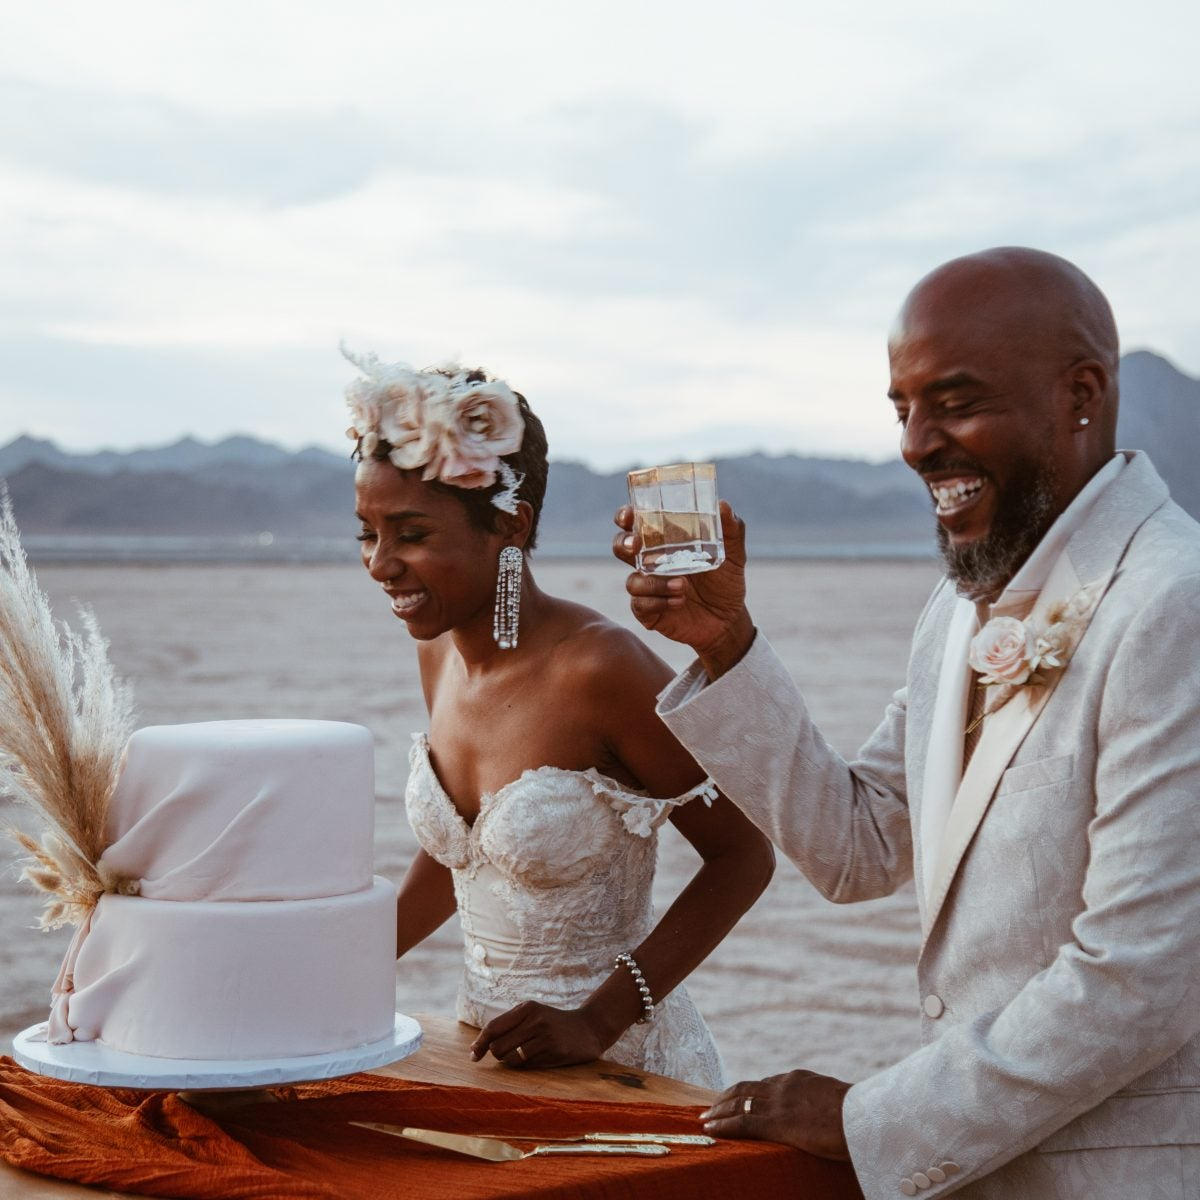 Bridal Bliss: Riqua And Andre's Wedding Included The Vegas Strip, Showgirls, And A Stunning Desert Ceremony